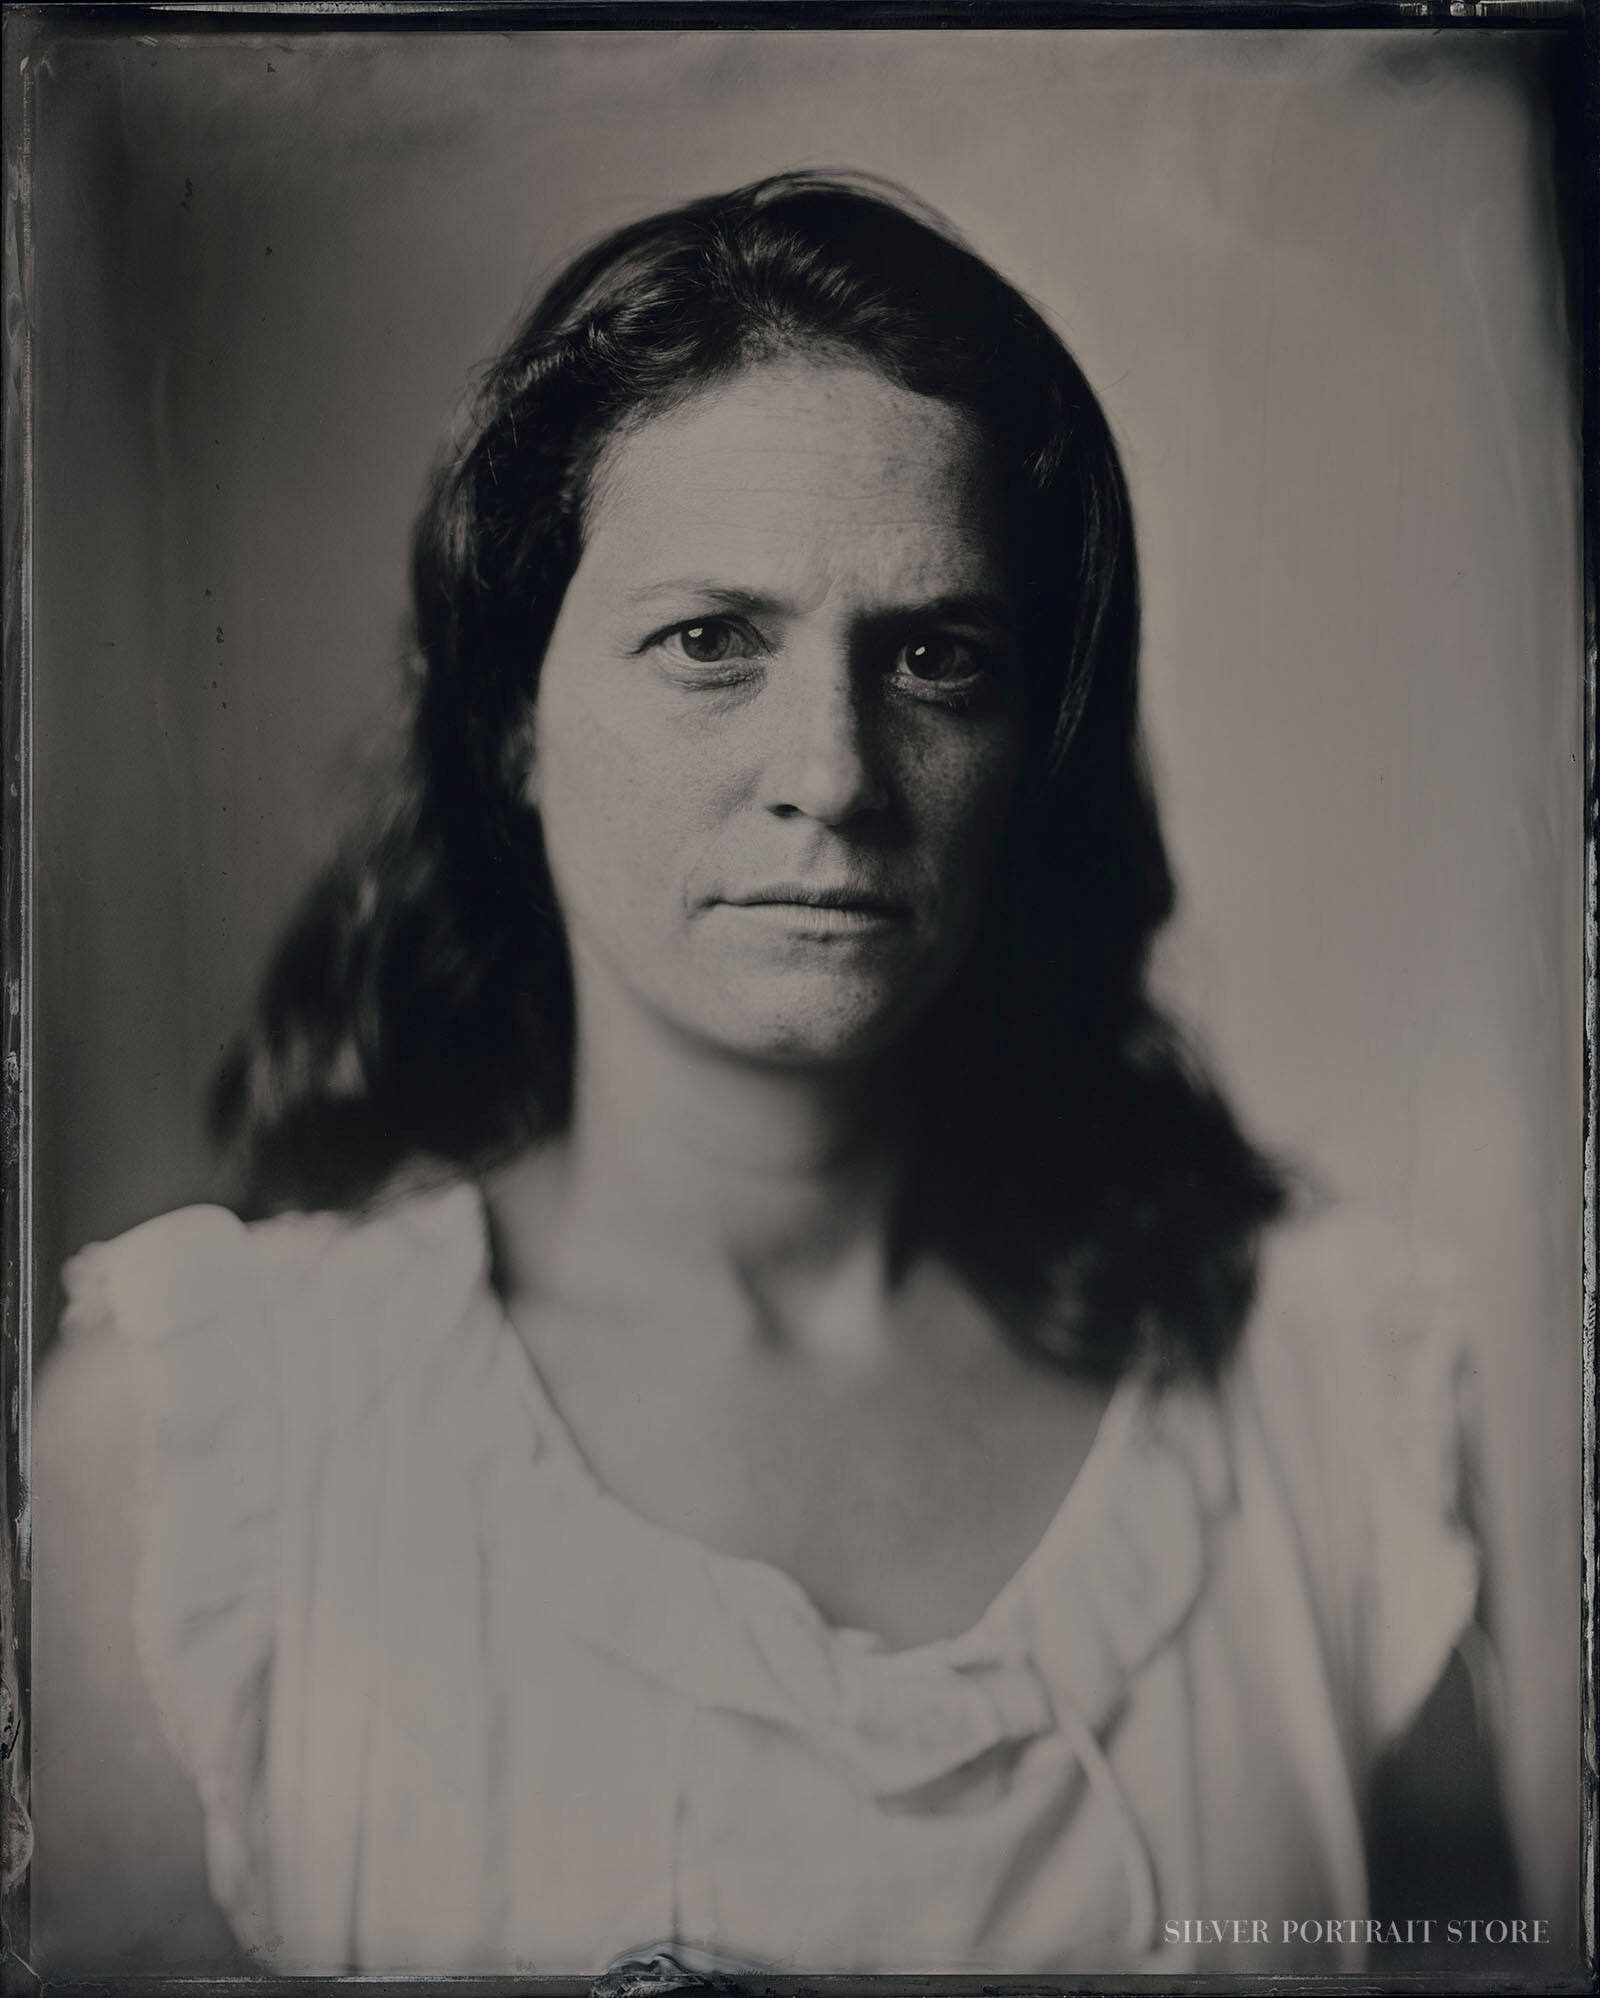 Eliza-Silver Portrait Store-Scan from Wet plate collodion-Tintype 20 x 25 cm.